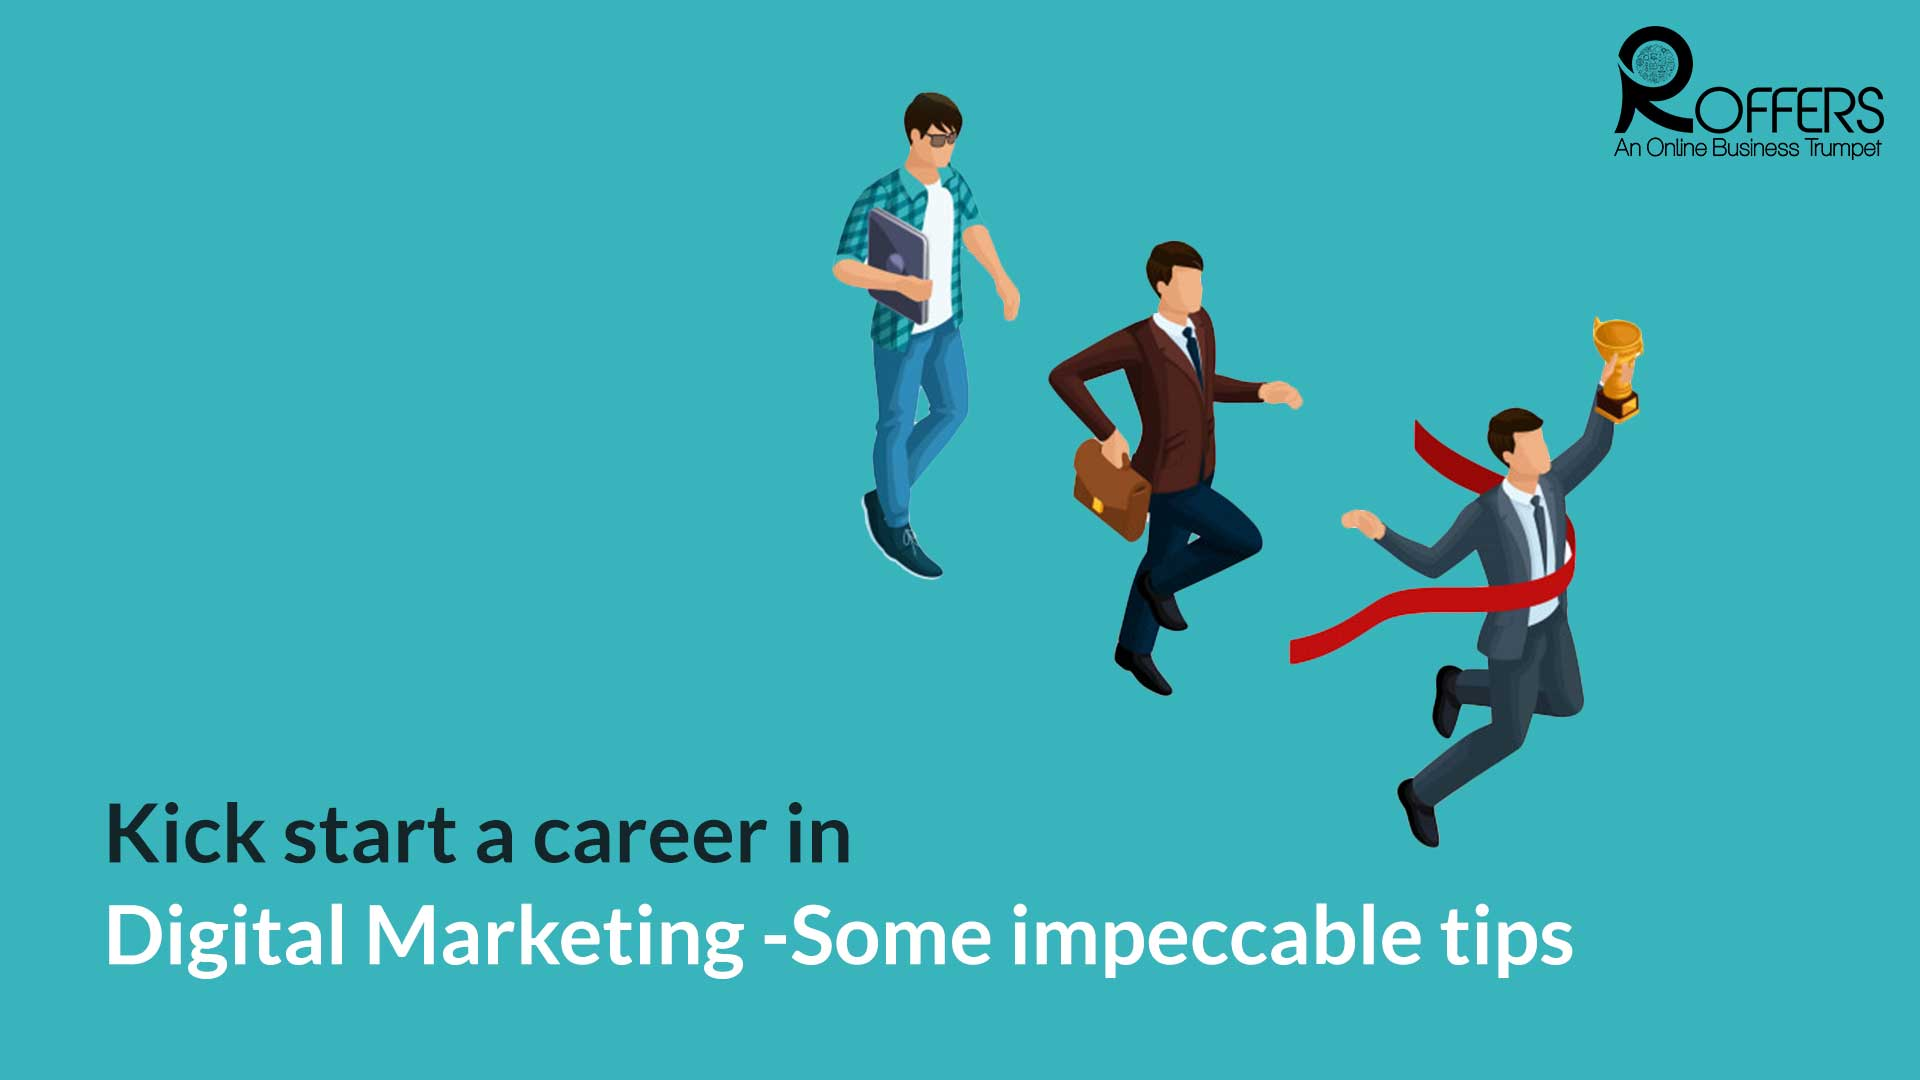 kick start a career in digital Marketing